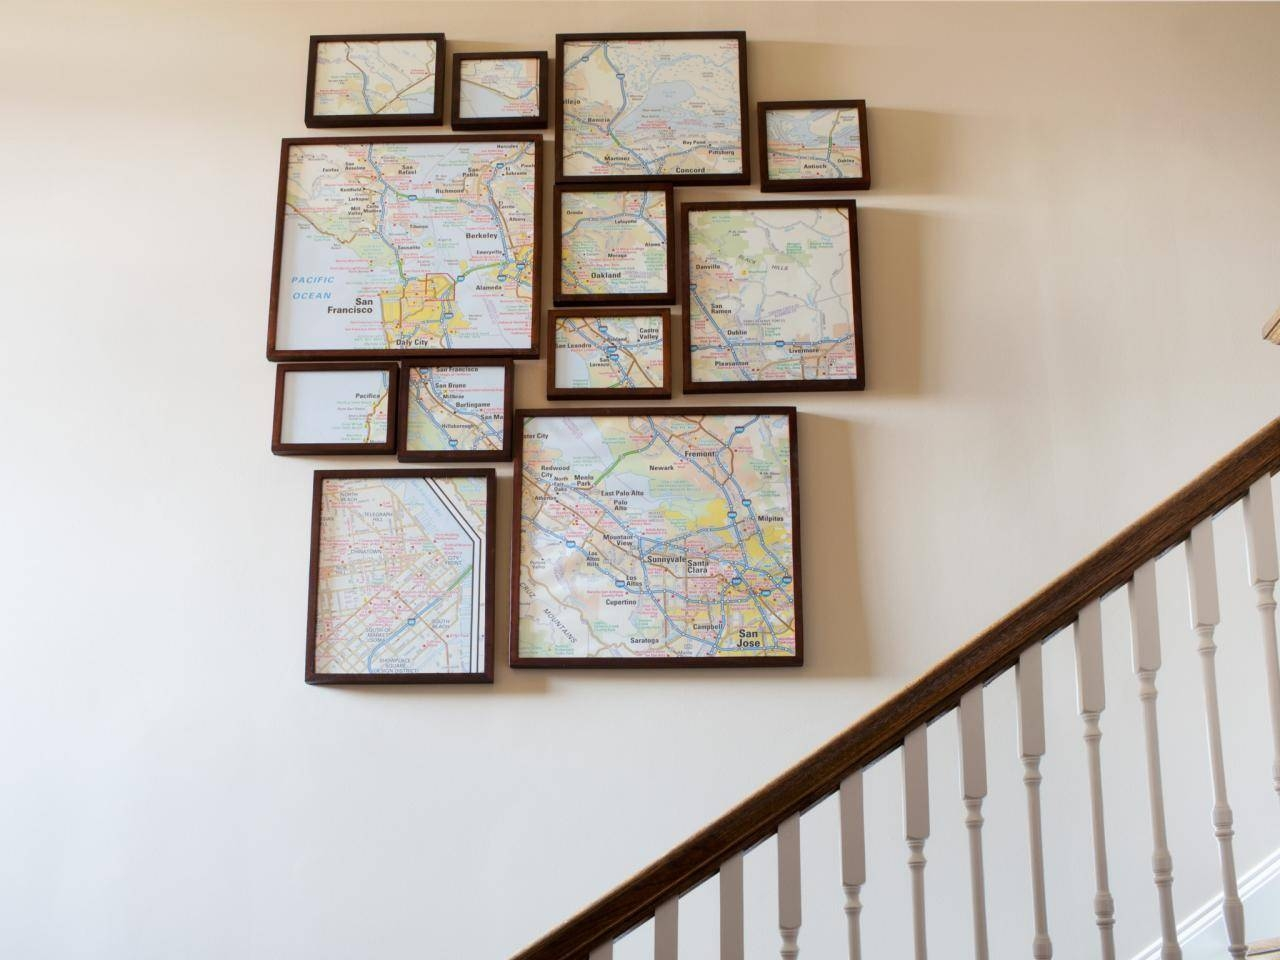 How To Create Fractured, Framed Map Art | Hgtv Within Newest Map Wall Artwork (View 8 of 20)